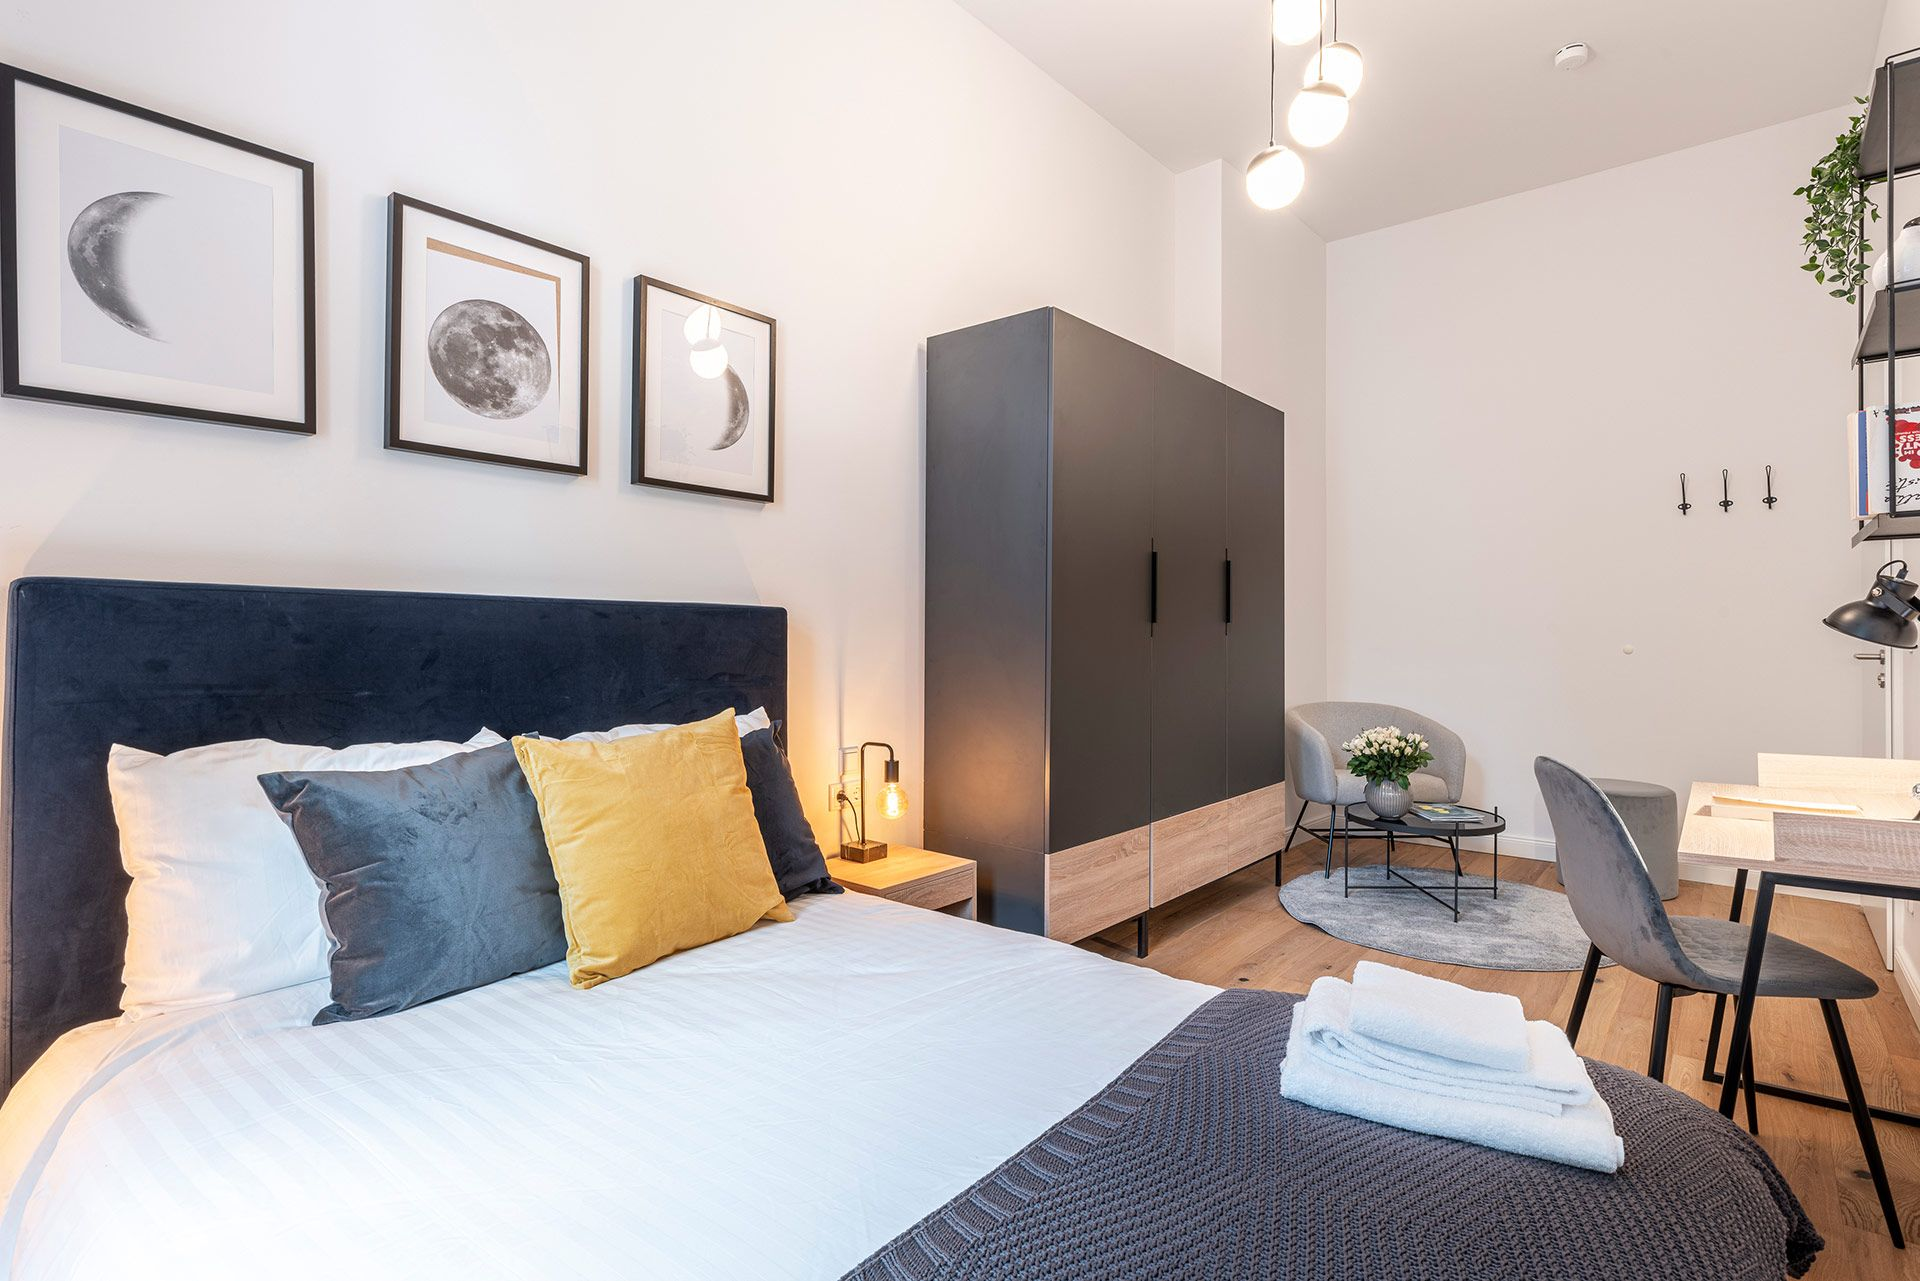 Private Room - Small apartment to rent in Berlin STRA-MARK-1111-2